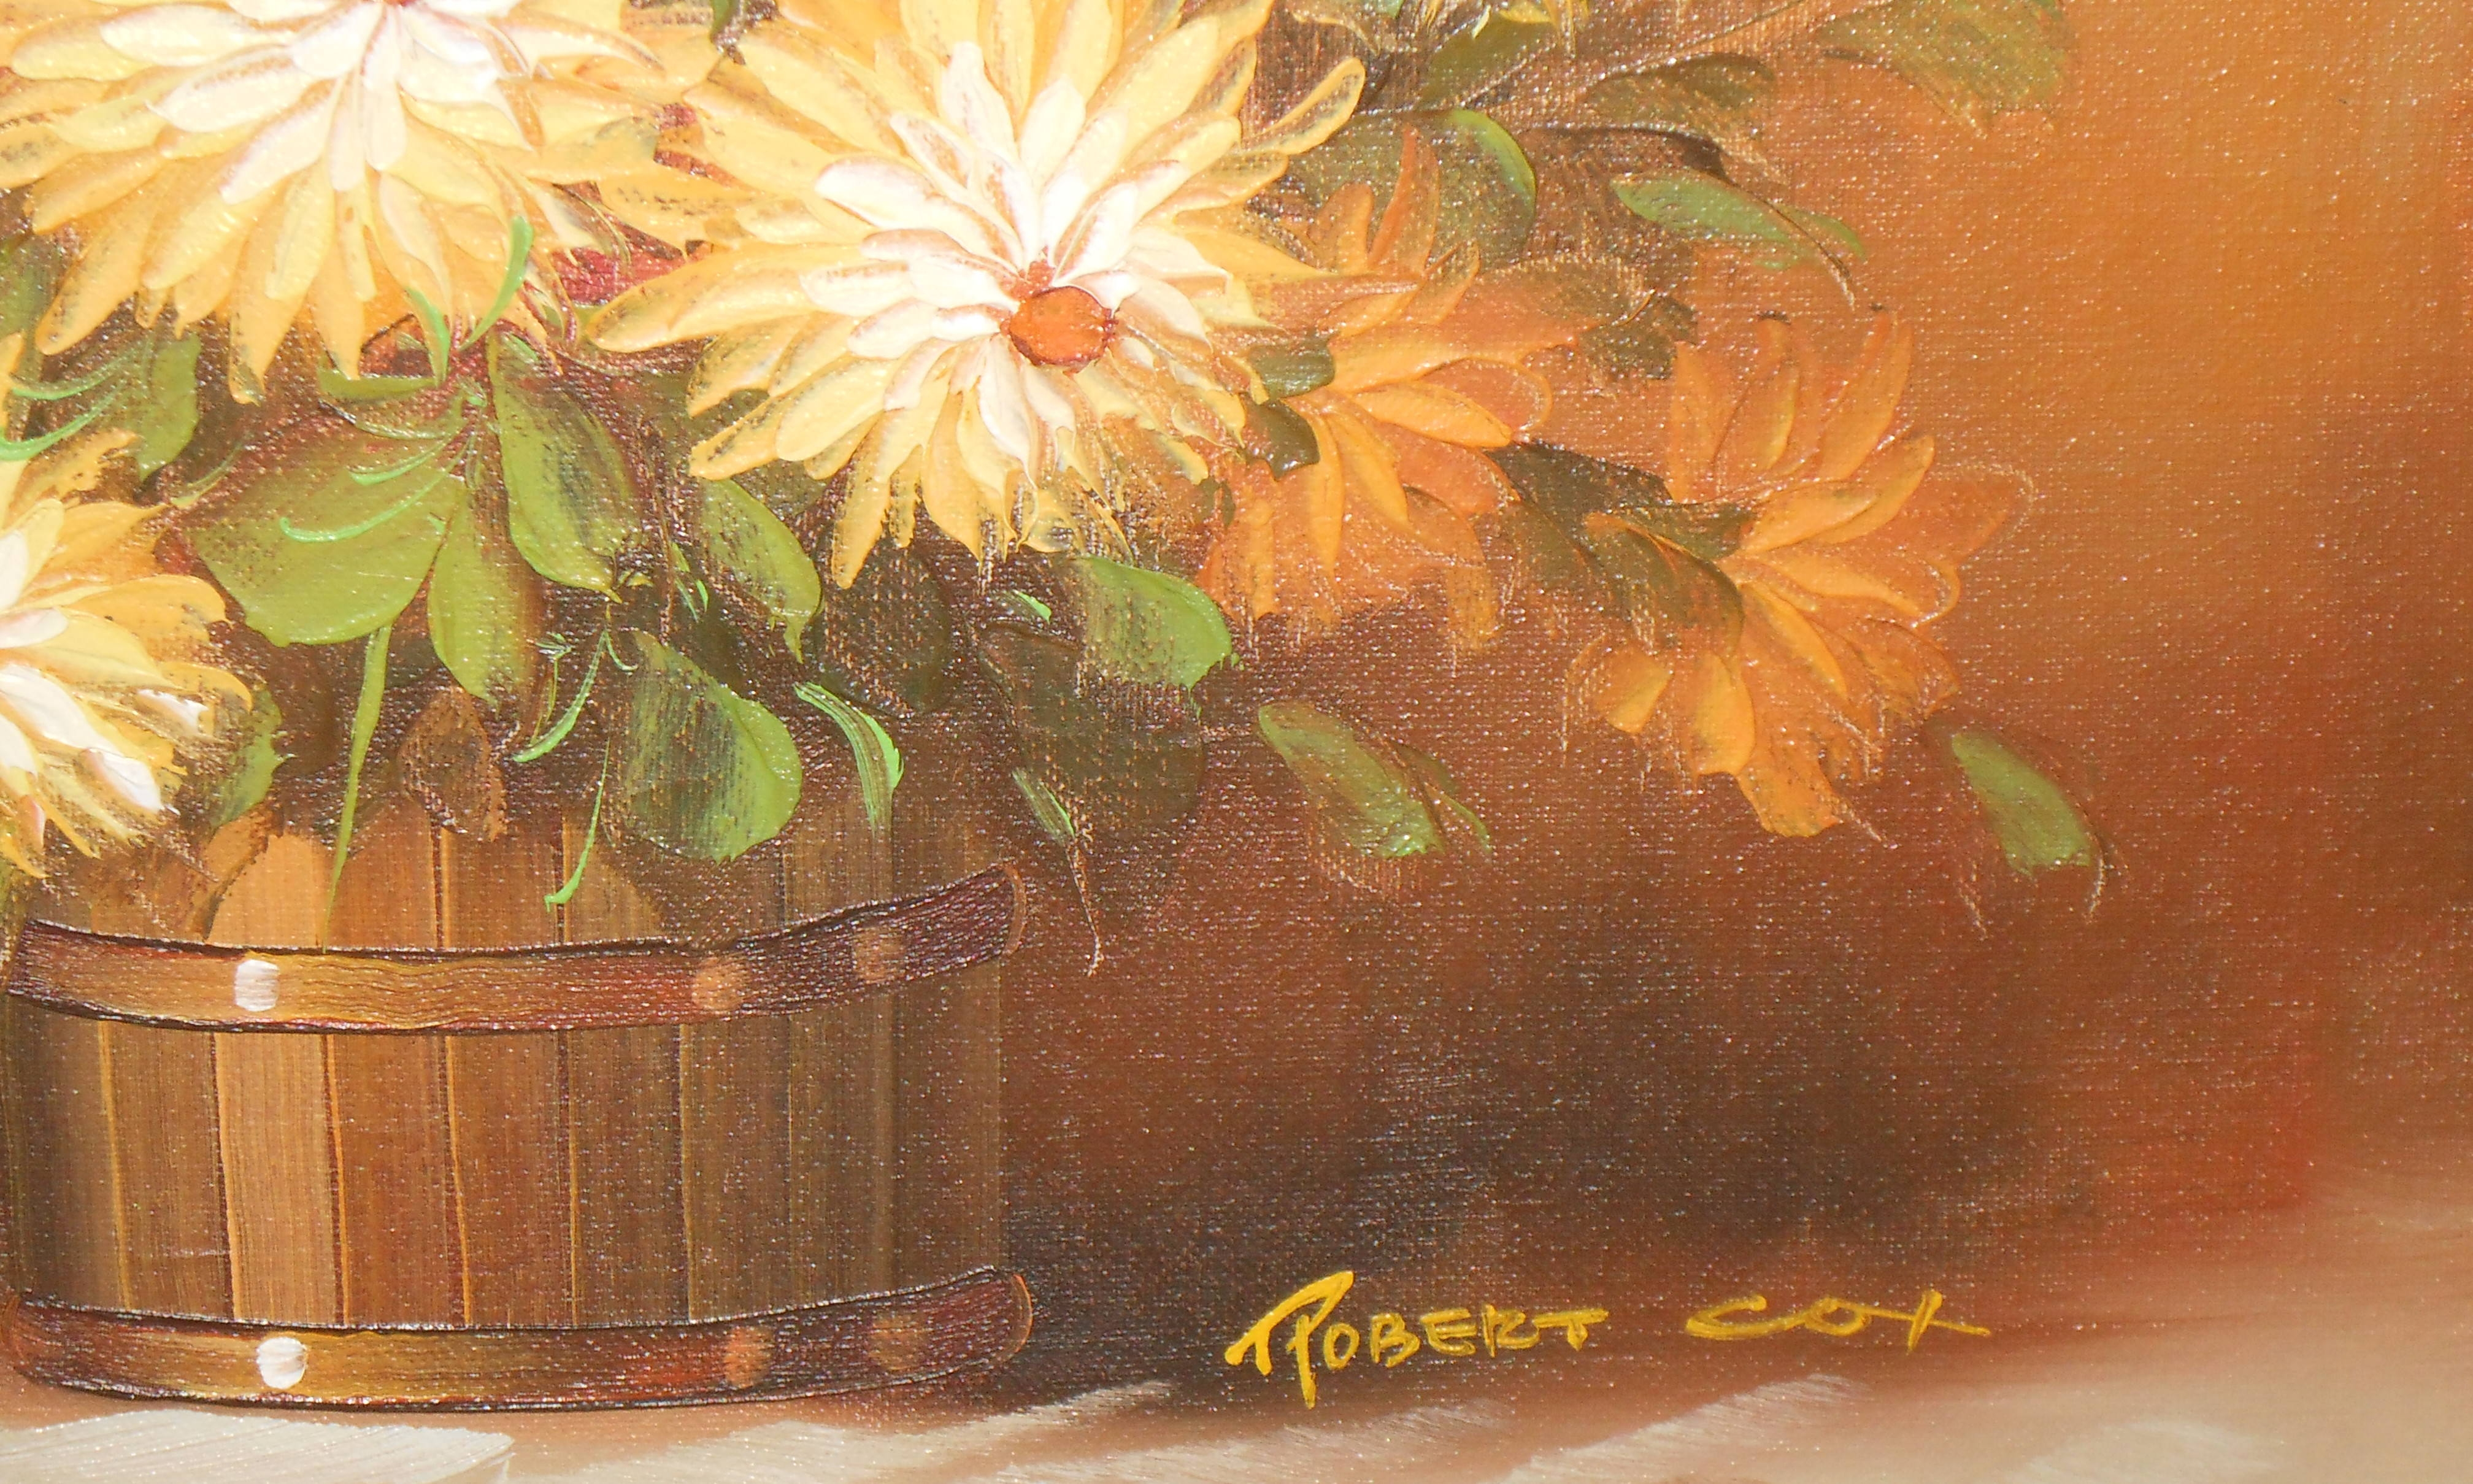 vintage robert cox oil painting of yellow and orange flowers in a wooden planter 1934 2001 c